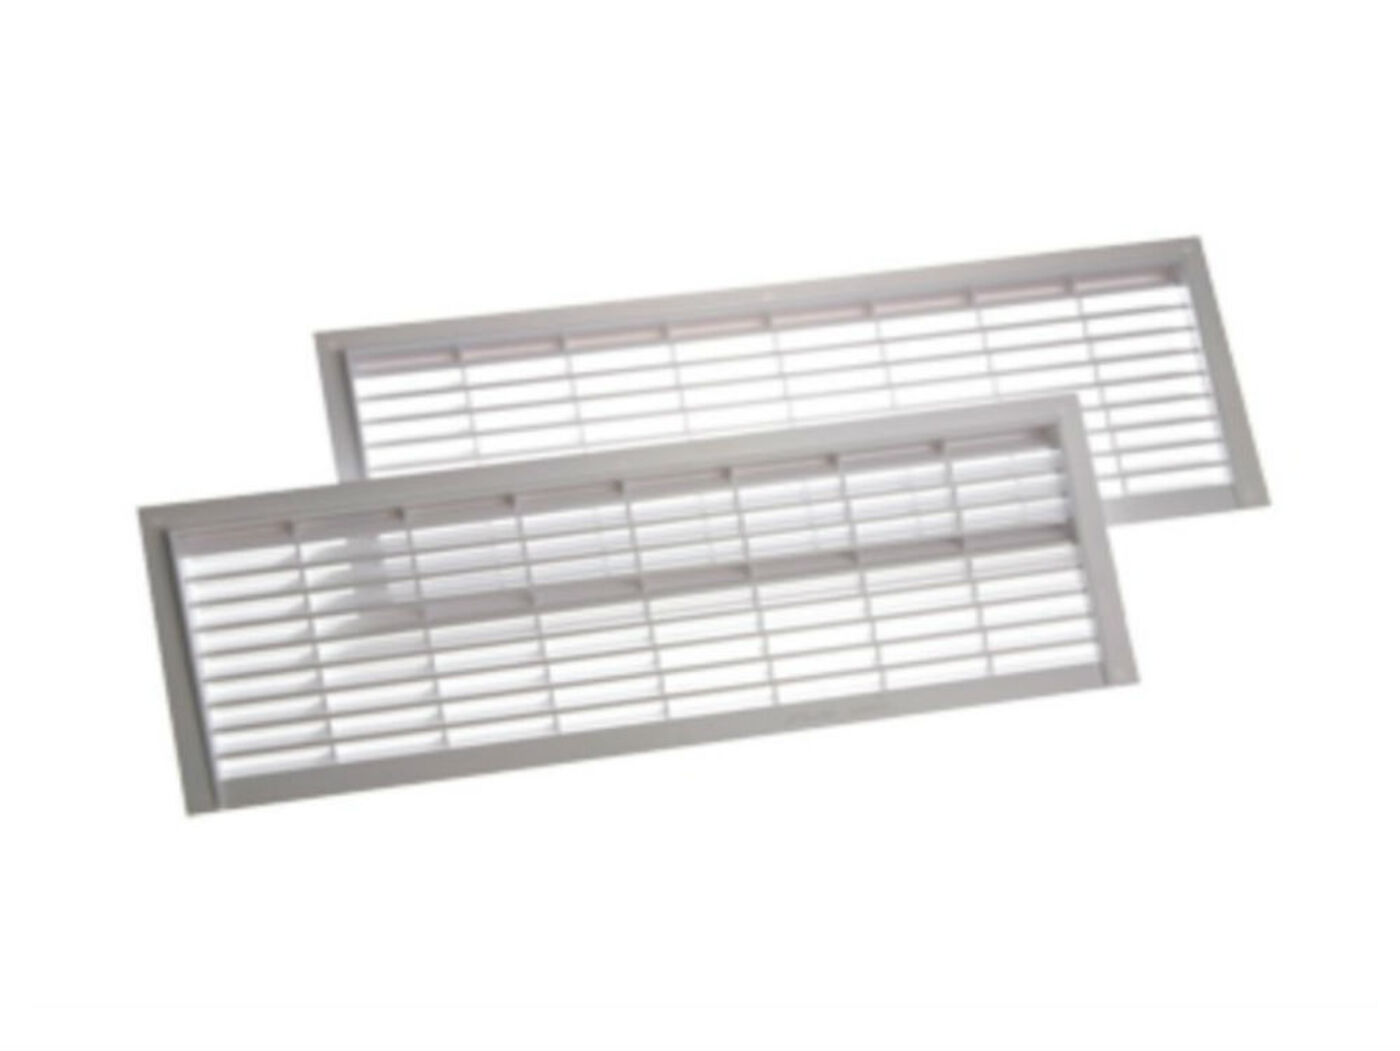 Accessory Shop Caravan Motorhome Ventilation Cooling Vents Vent